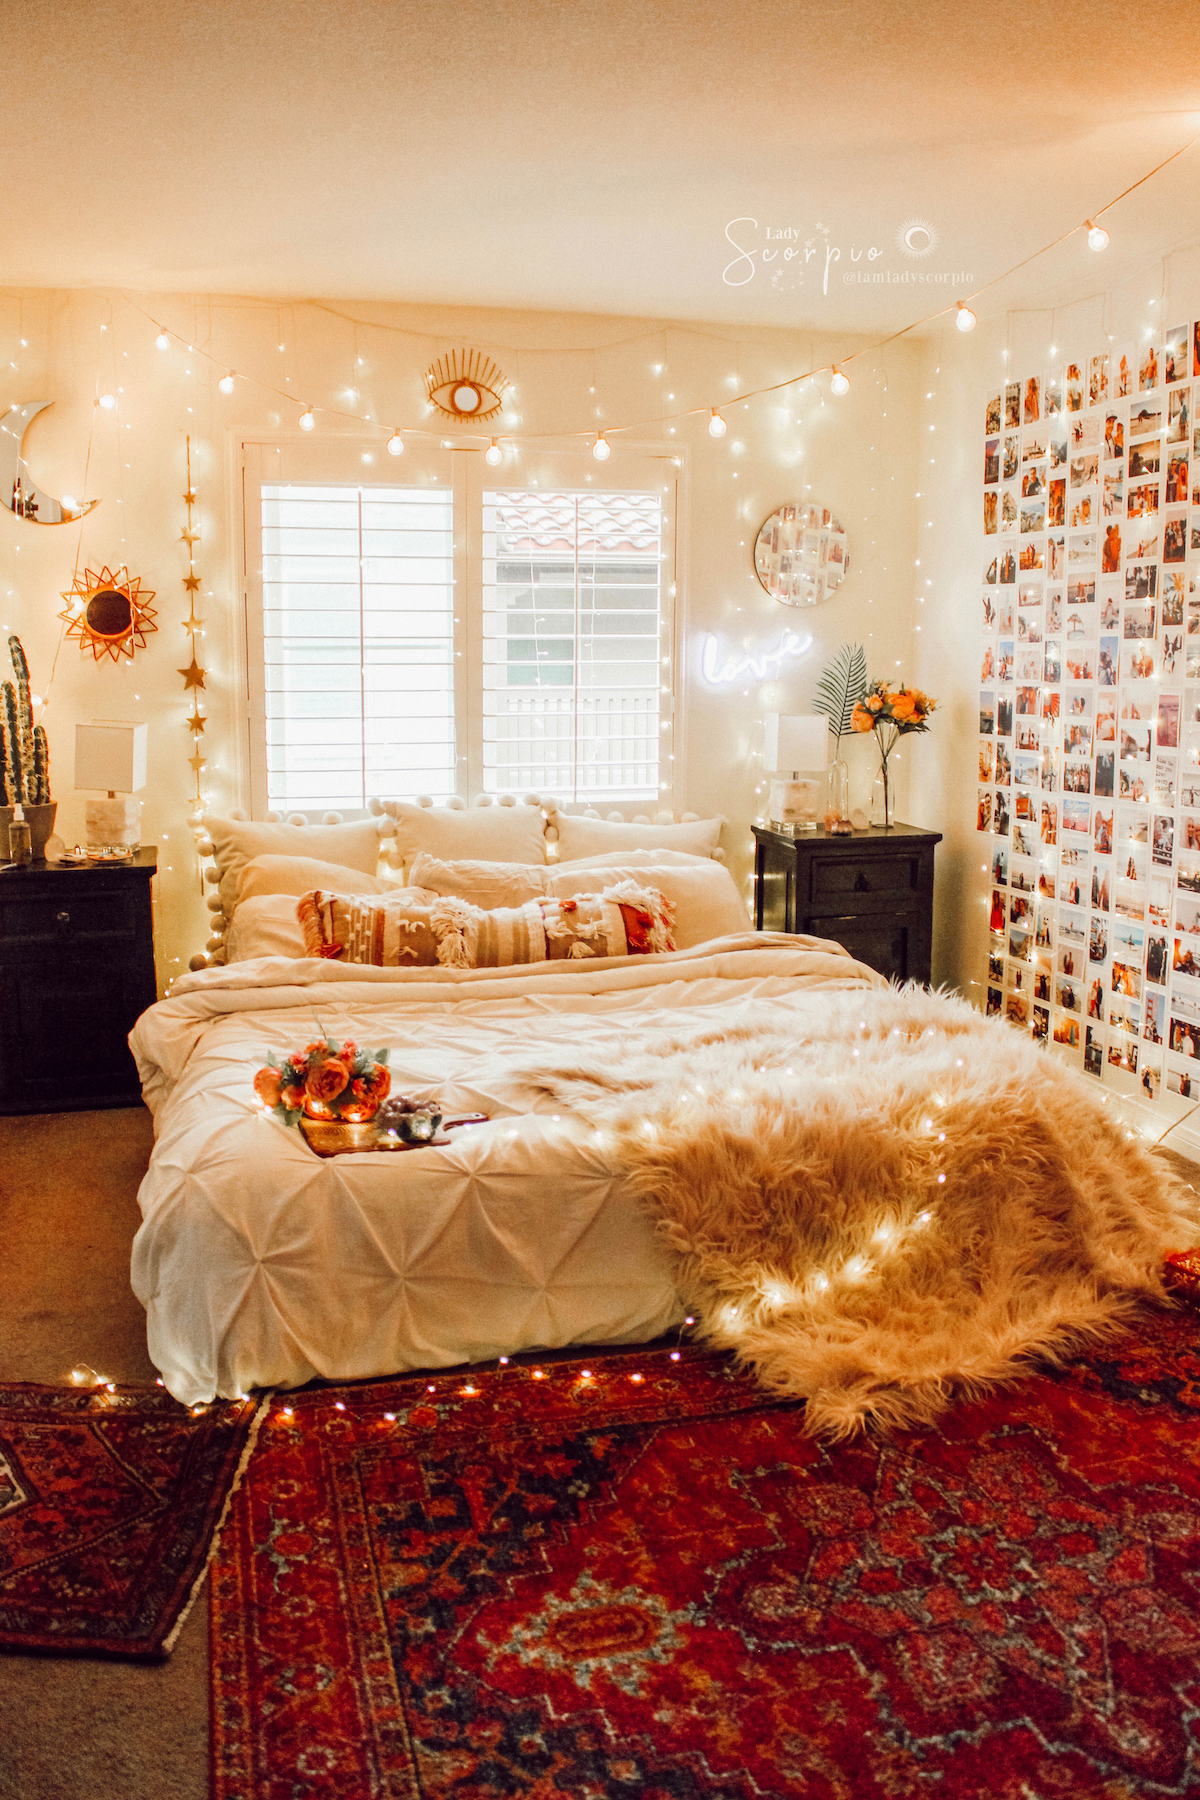 stargazer wall hanging decor in 2020 luxurious bedrooms on cute bedroom decor ideas for teen romantic bedroom decorating with light and color id=48588